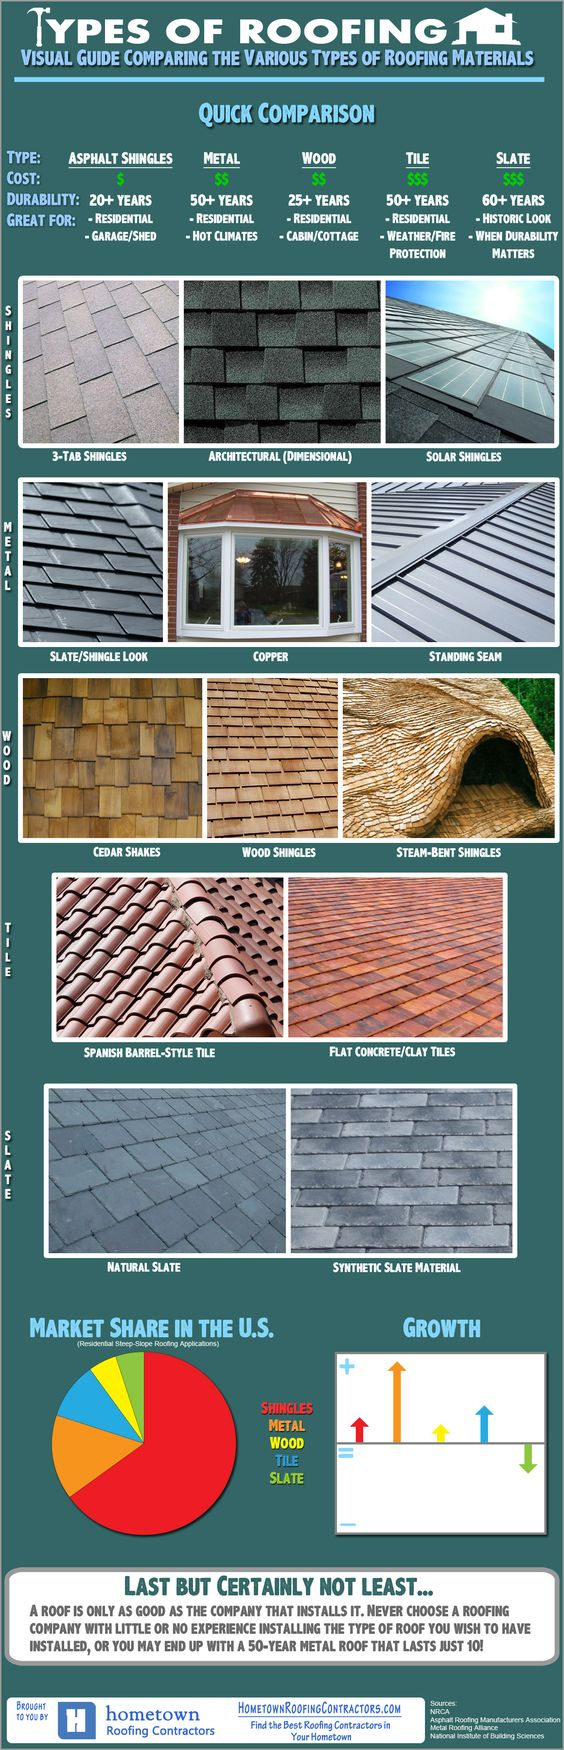 Types Of Residential Steep Slope Roofing Infographic Types Of Roofing Materials Roofing Roofing Materials